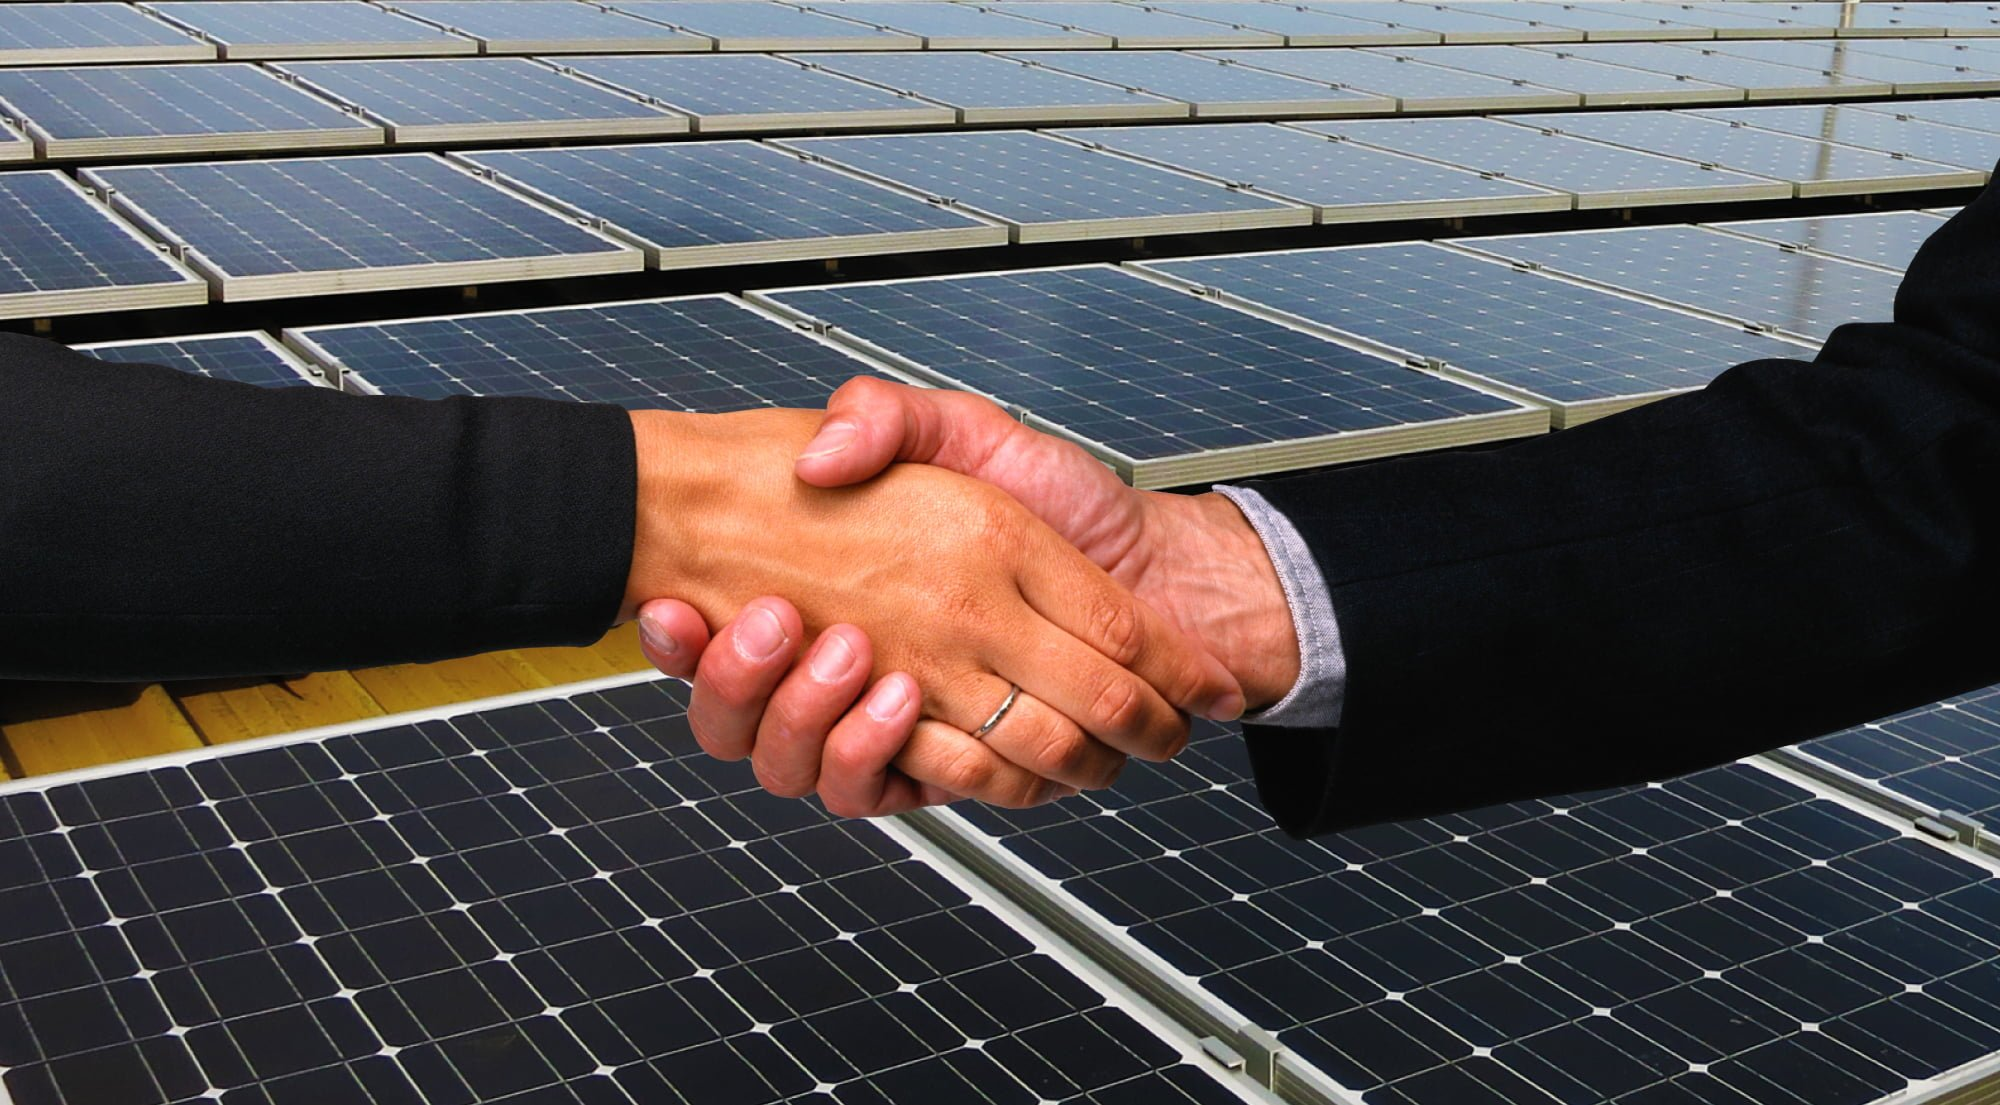 two people shaking hands and PROINSO solar panels in the background